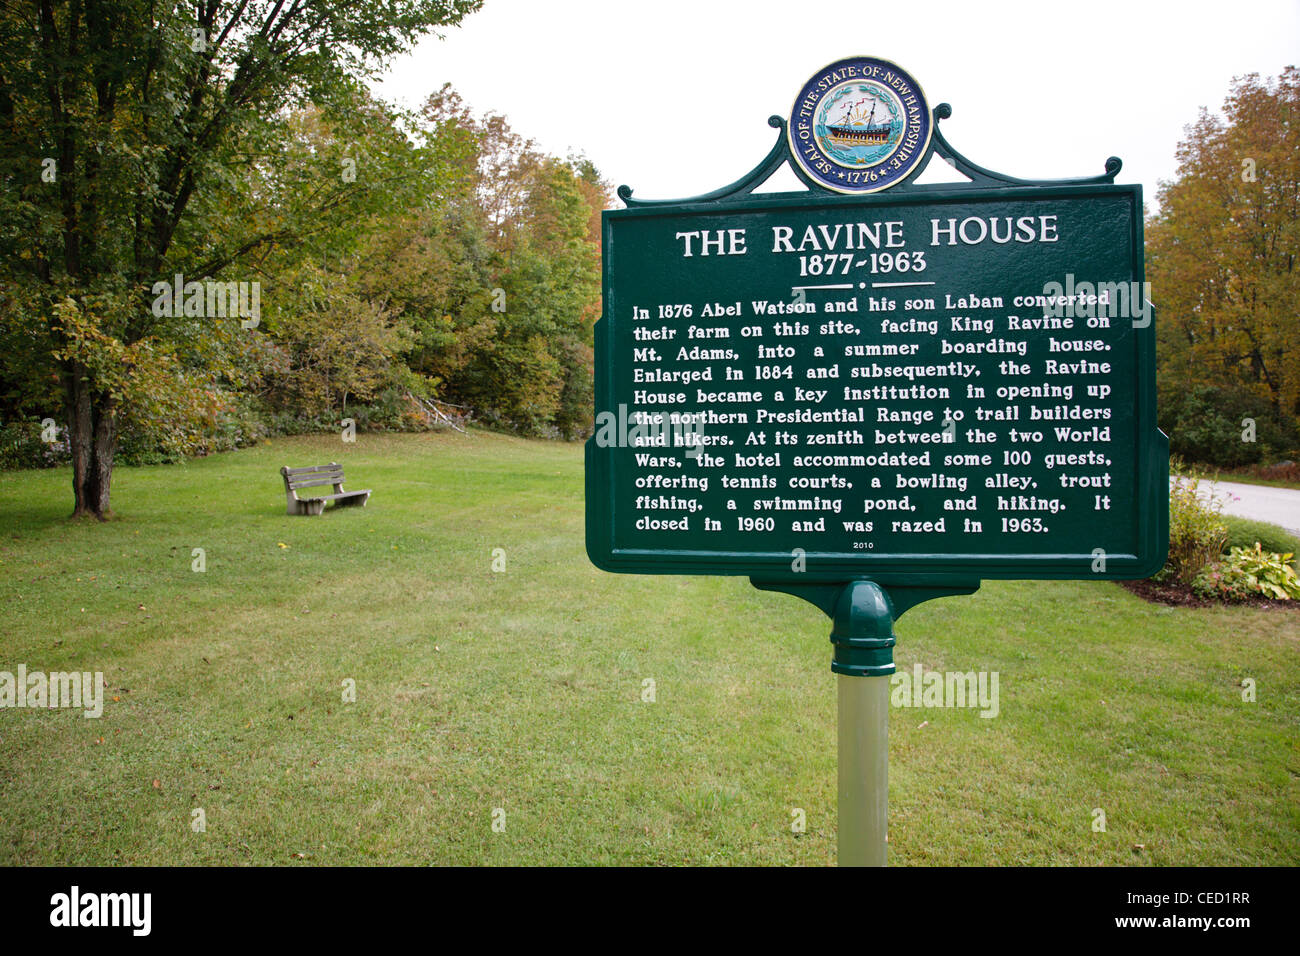 The Ravine House Site (1877 - 1963) in Randolph, New Hampshire. Closed in 1960 and was razed in 1963 - Stock Image